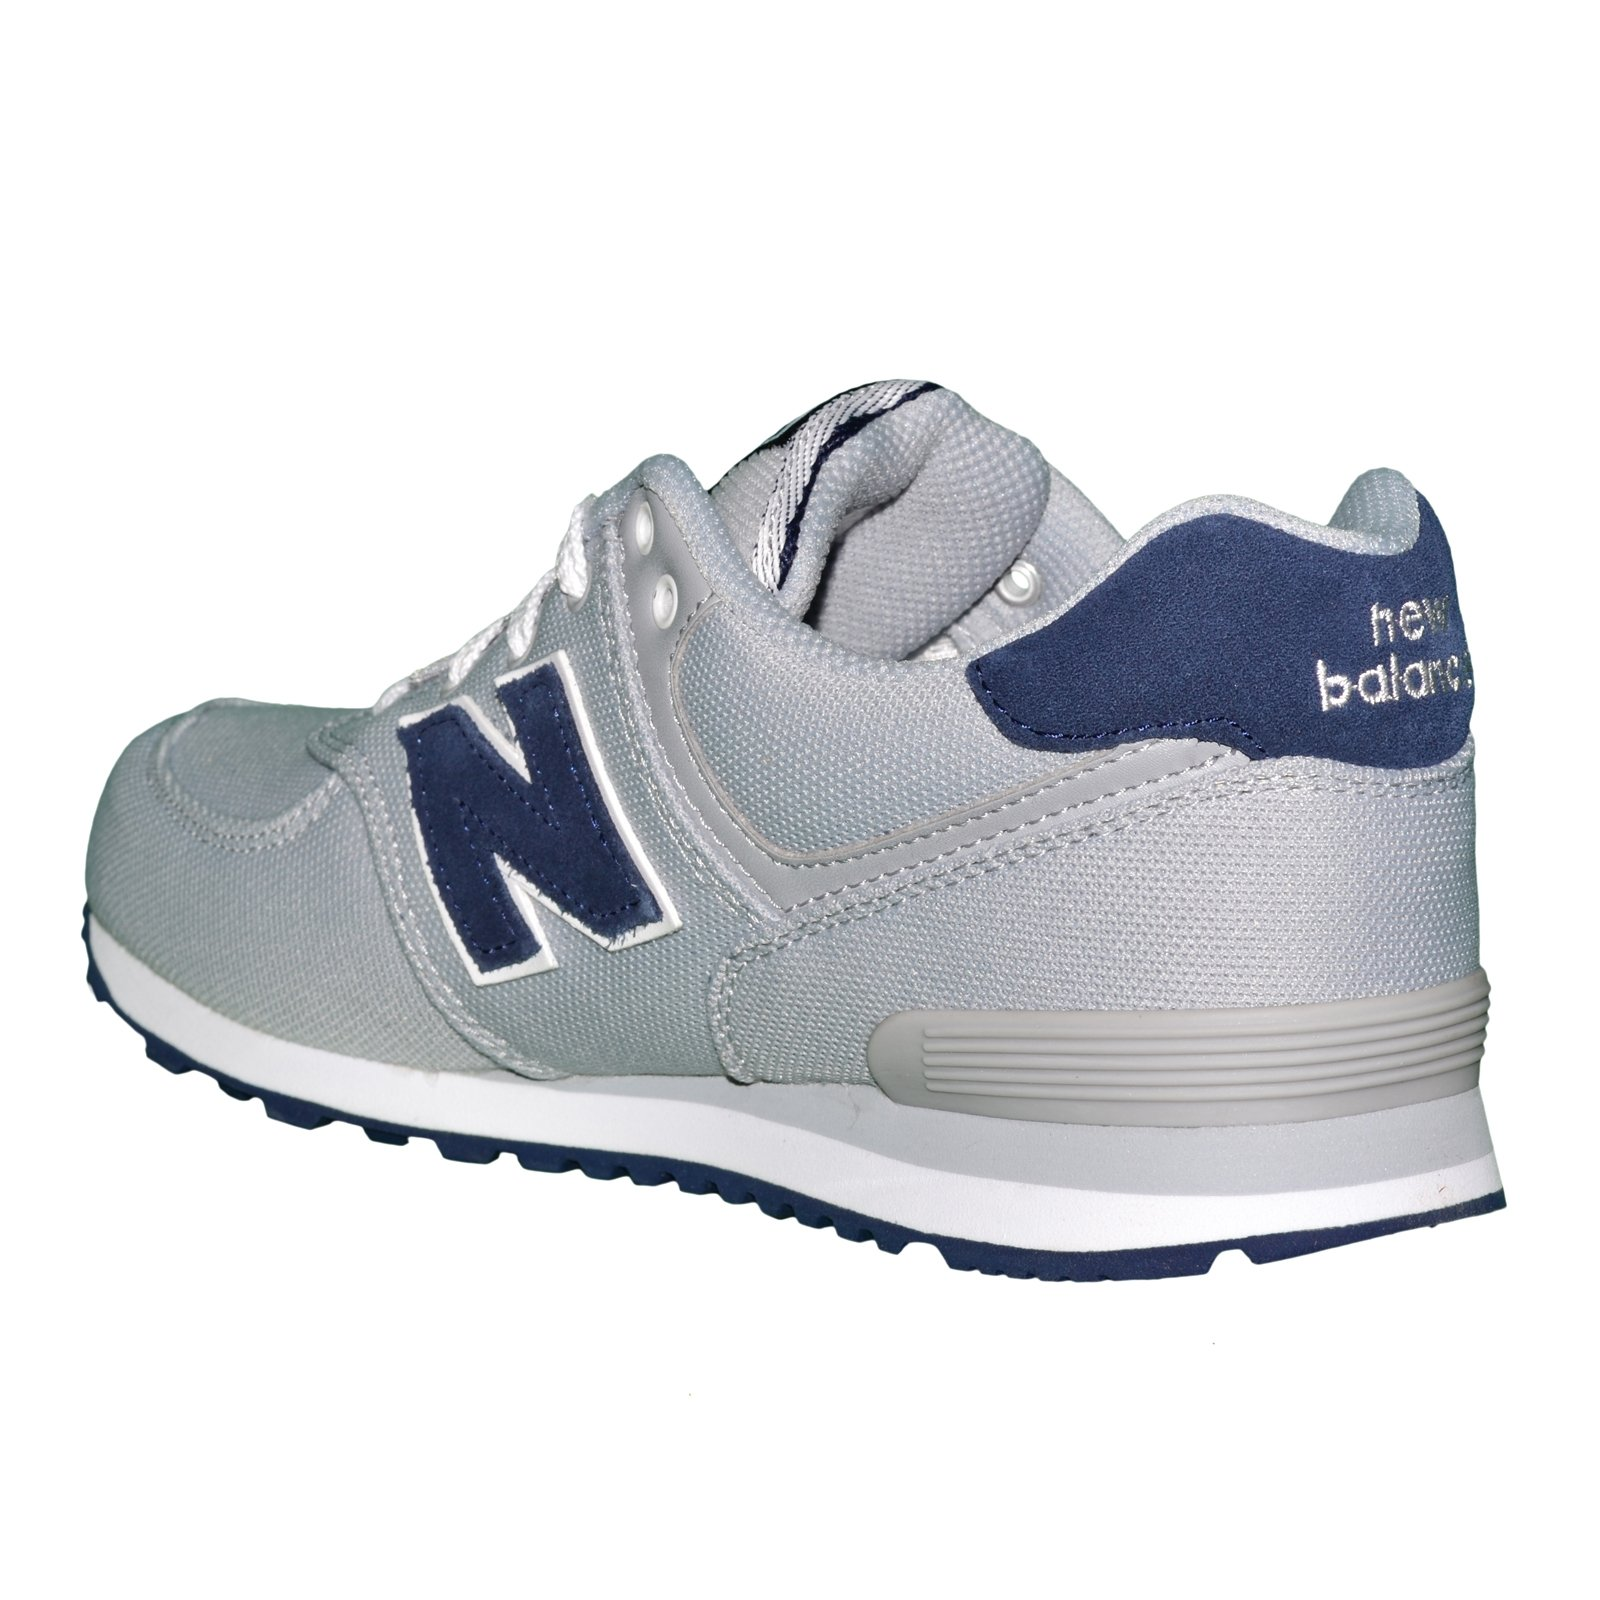 basket new balance kl574 Distance Noir, Light Grise, Blanche Unisex ... 2955feb0c7ee